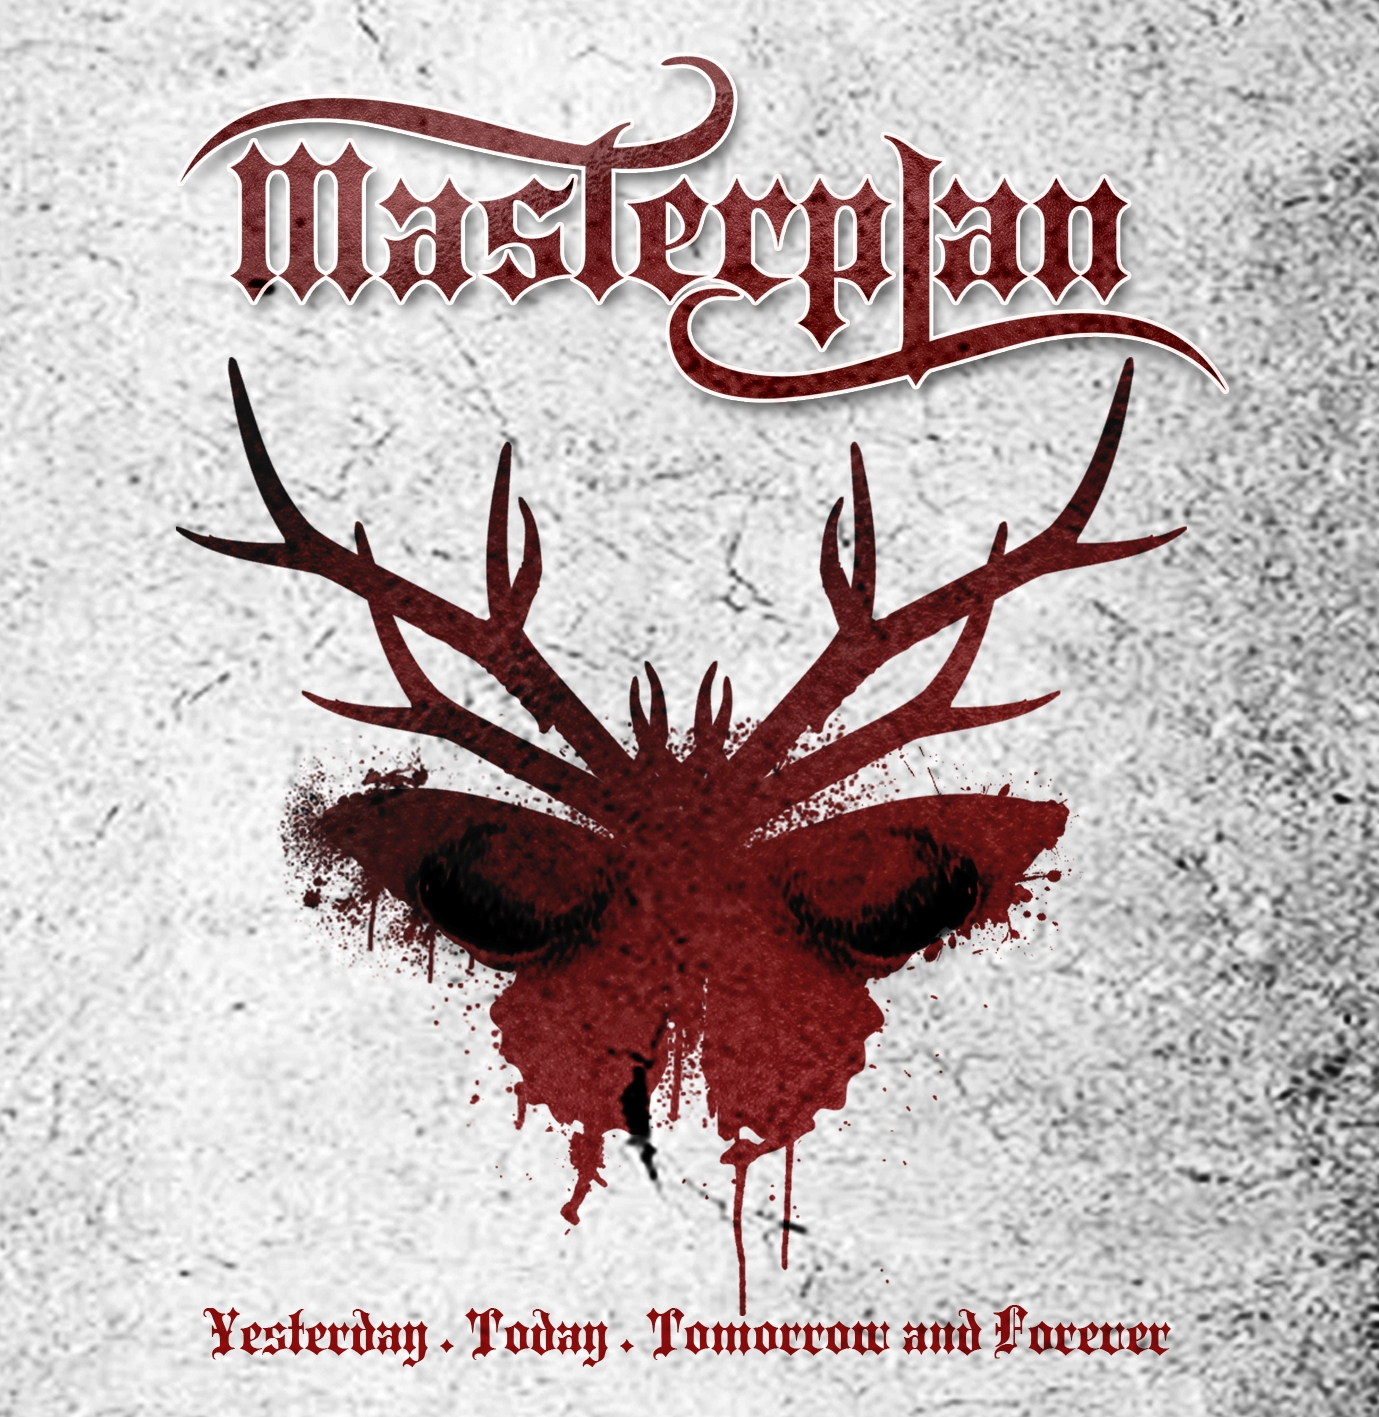 Masterplan - Yesterday, Today, Tomorrow and Forever